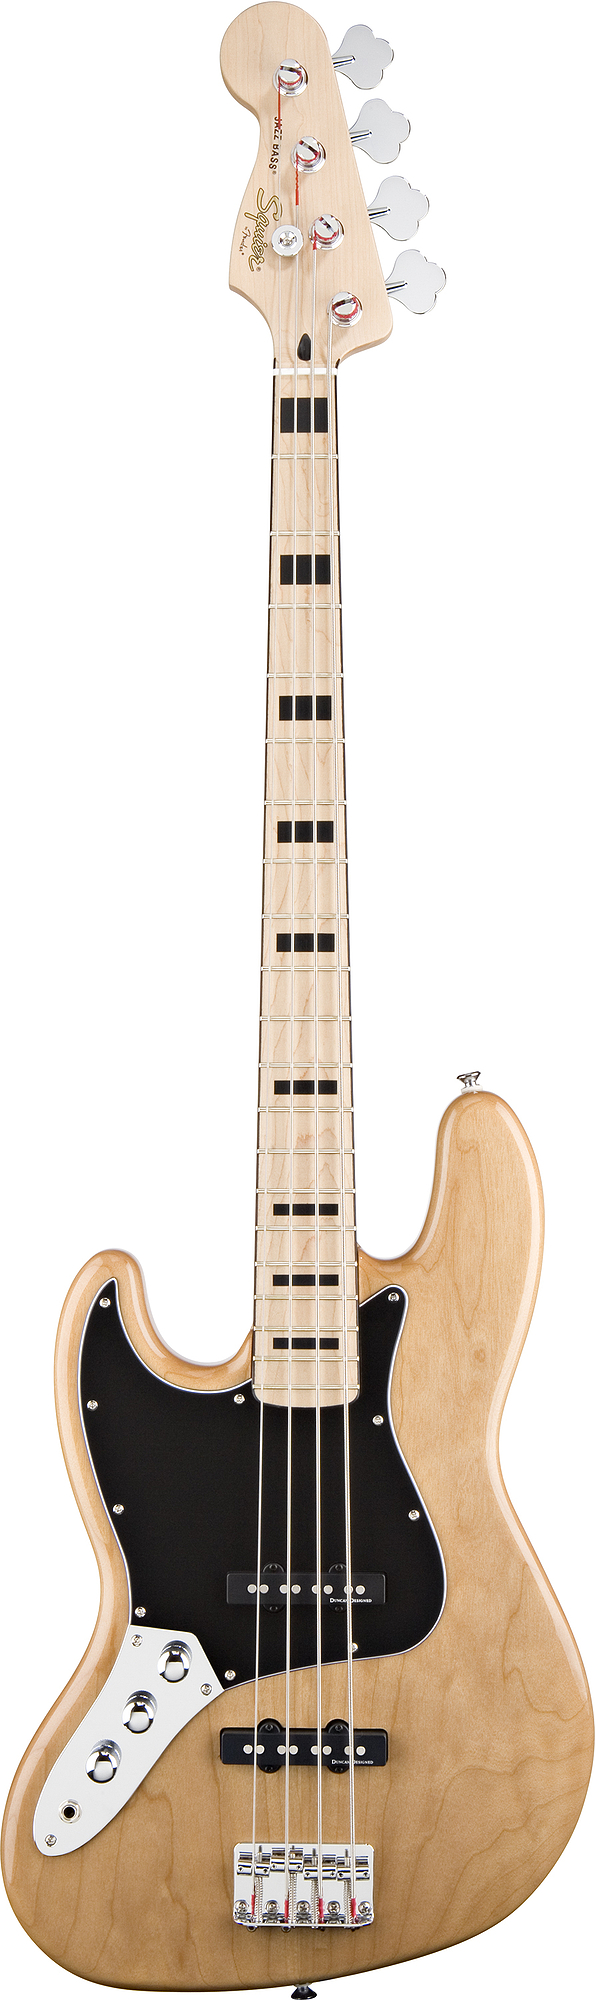 Squier Vintage Modified Jazz Bass 70s Lefty Bass Guitar Natural Cheap Bass Guitar Bass Guitar Lefty Guitars